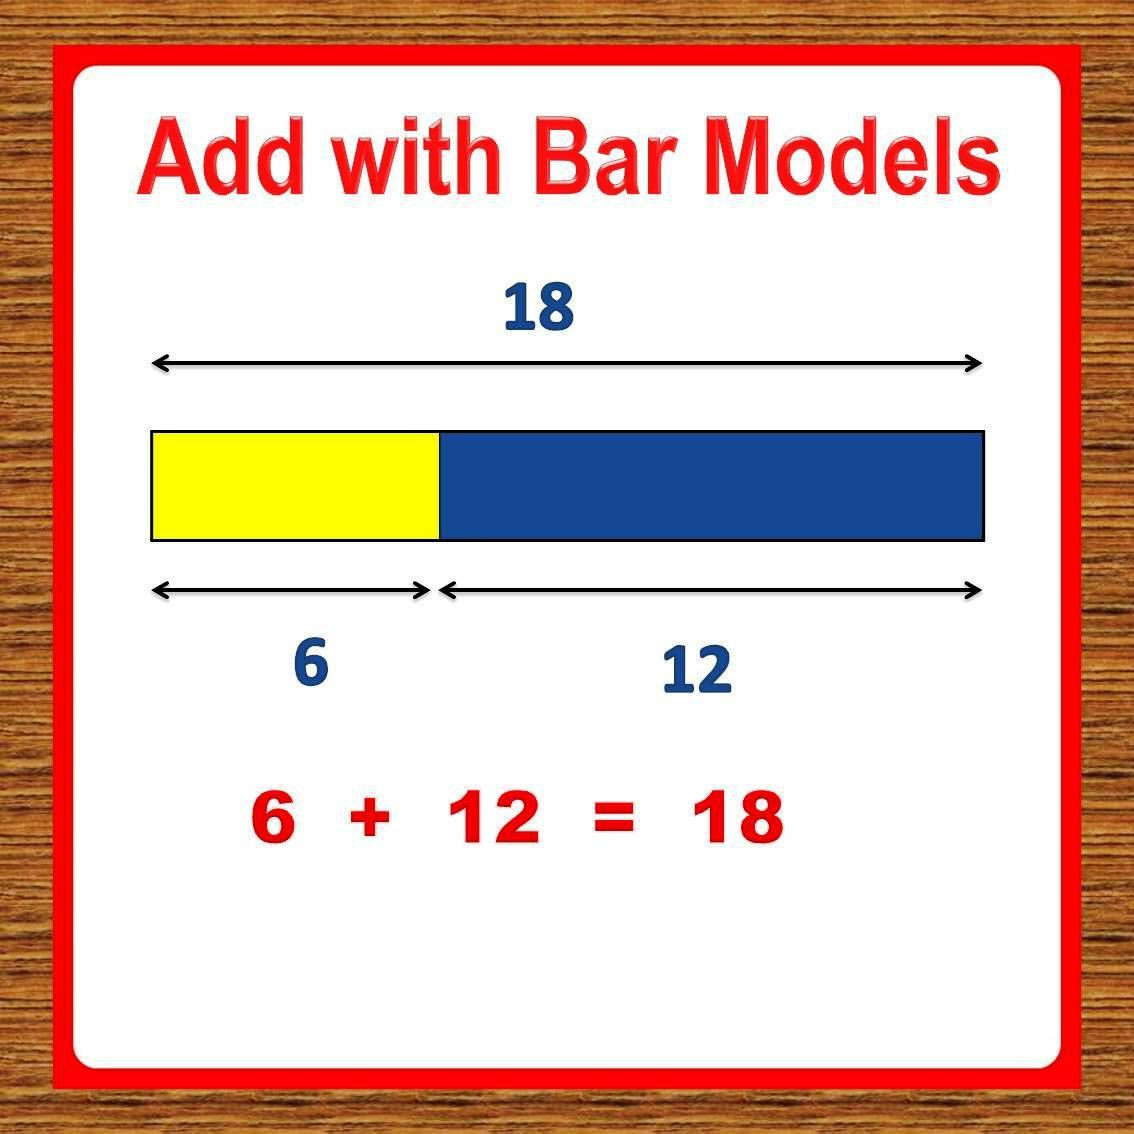 Bar Model Math Worksheets 1st Grade Math Worksheets Add with Bar Models Tape